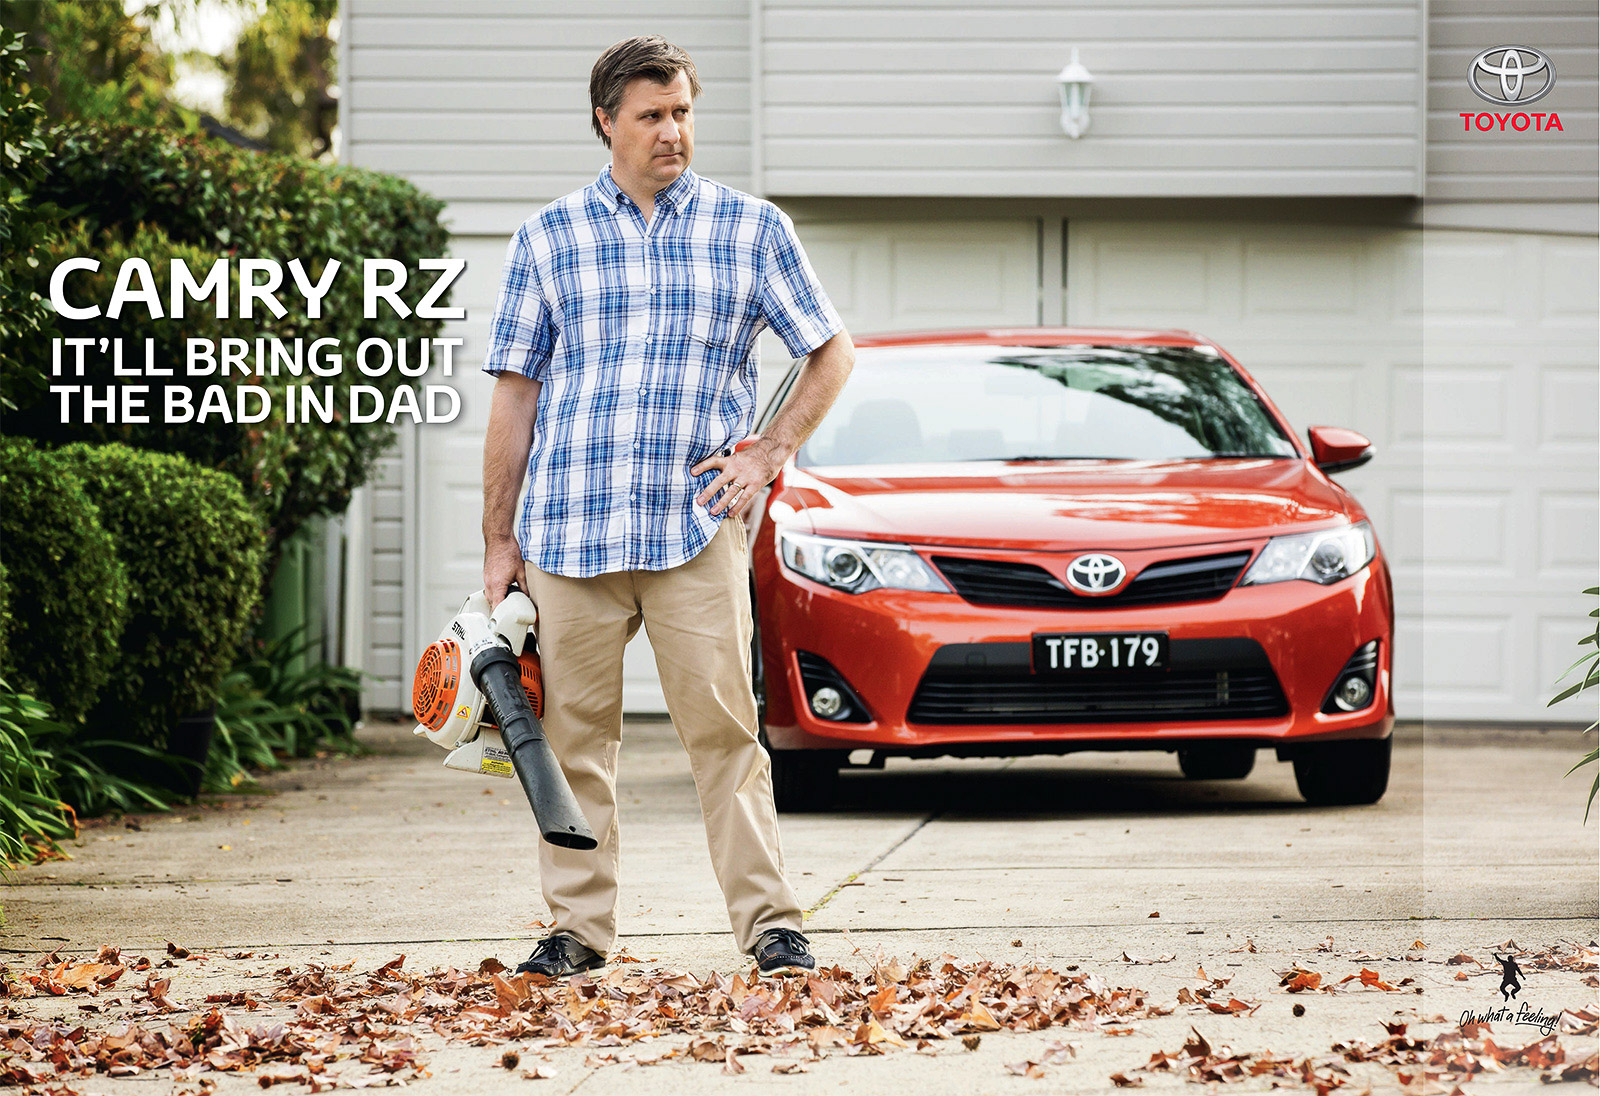 Toyota Camry Ad